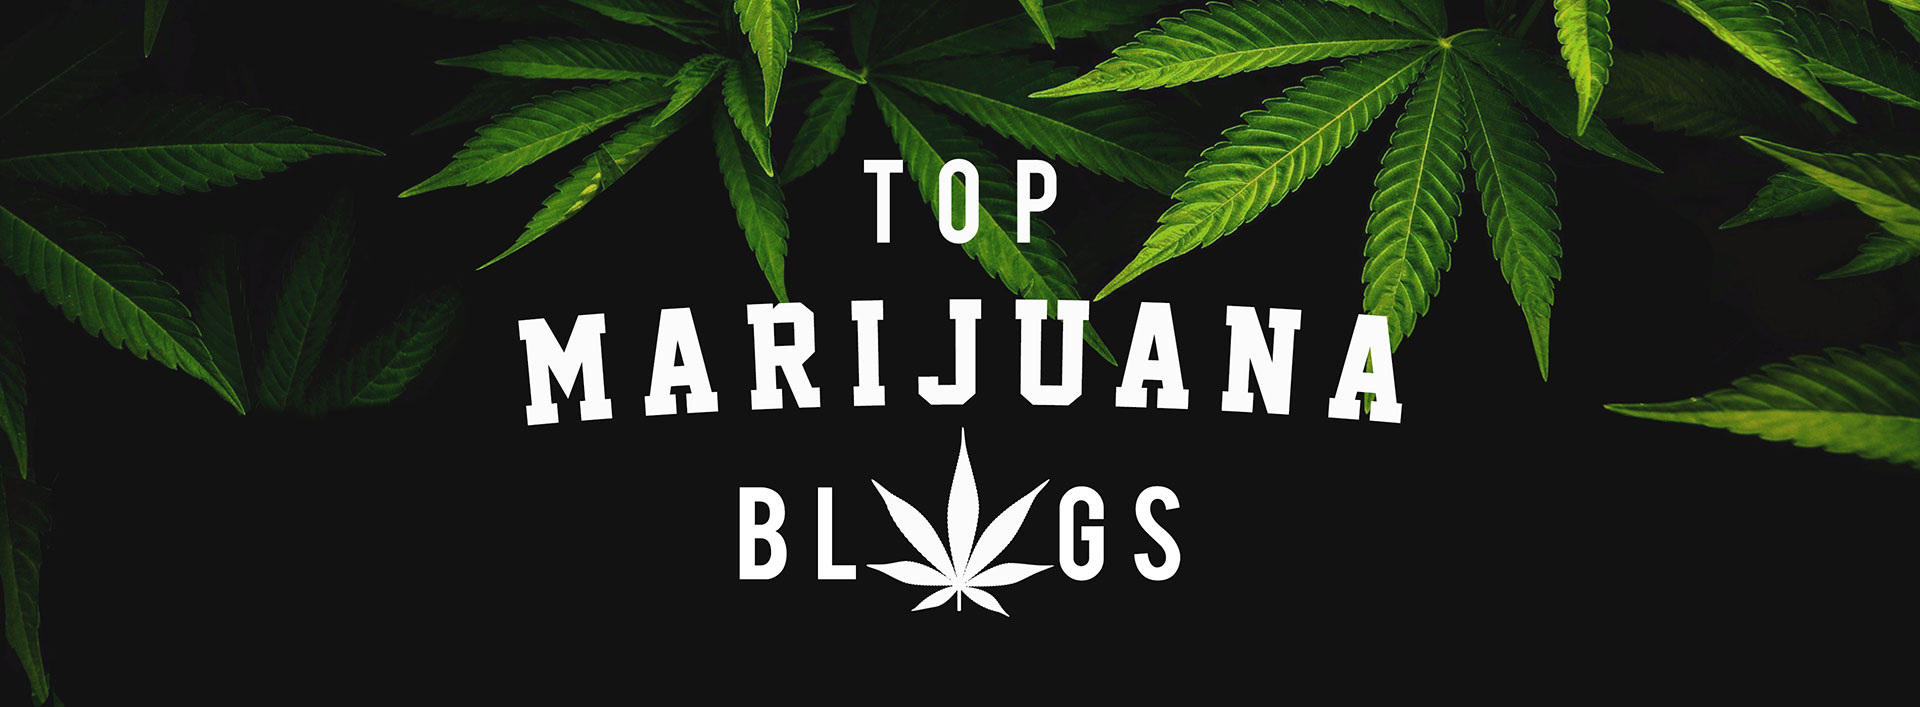 Top Marijuana Blogs